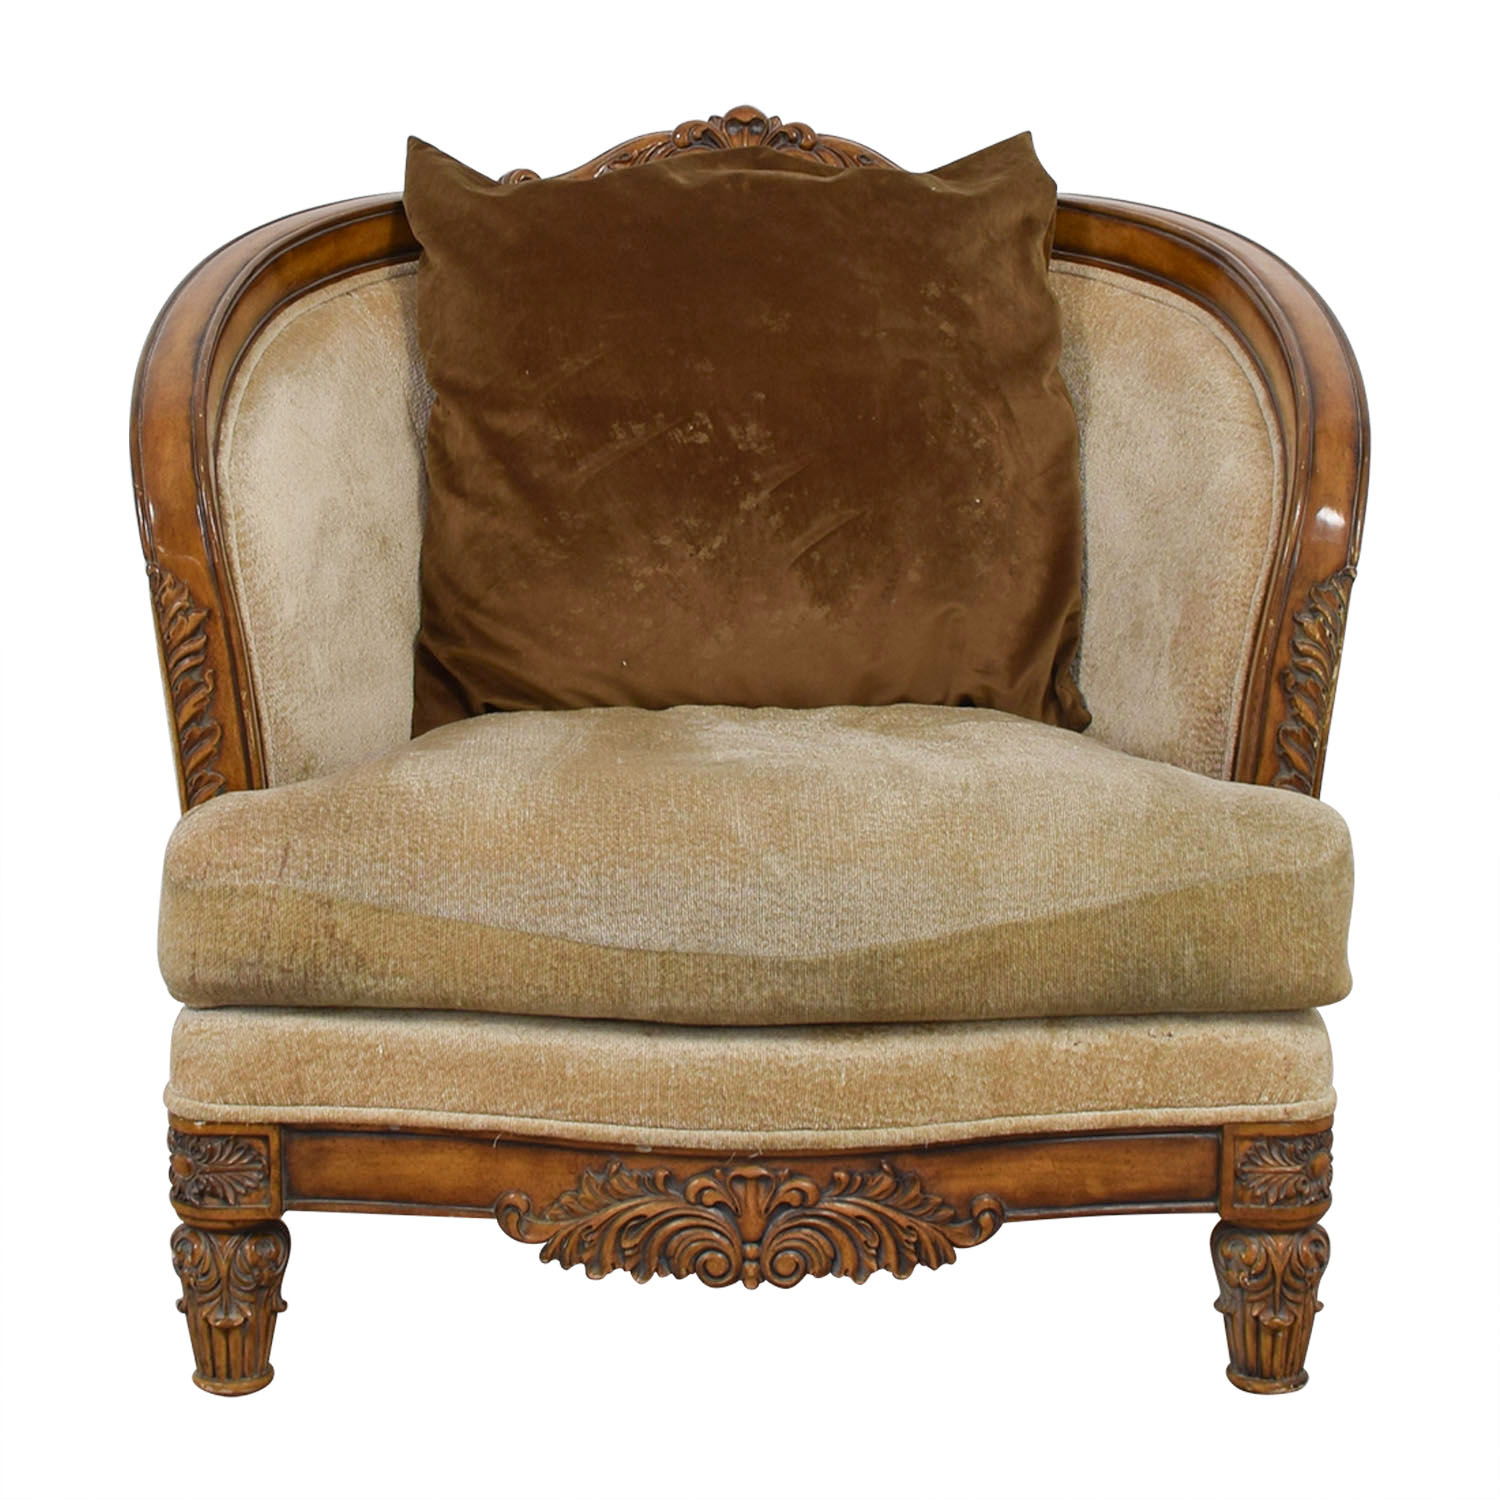 Home Goods Accent Chairs: HomeGoods Cynthia Rowley Shabby Chic Chair / Chairs